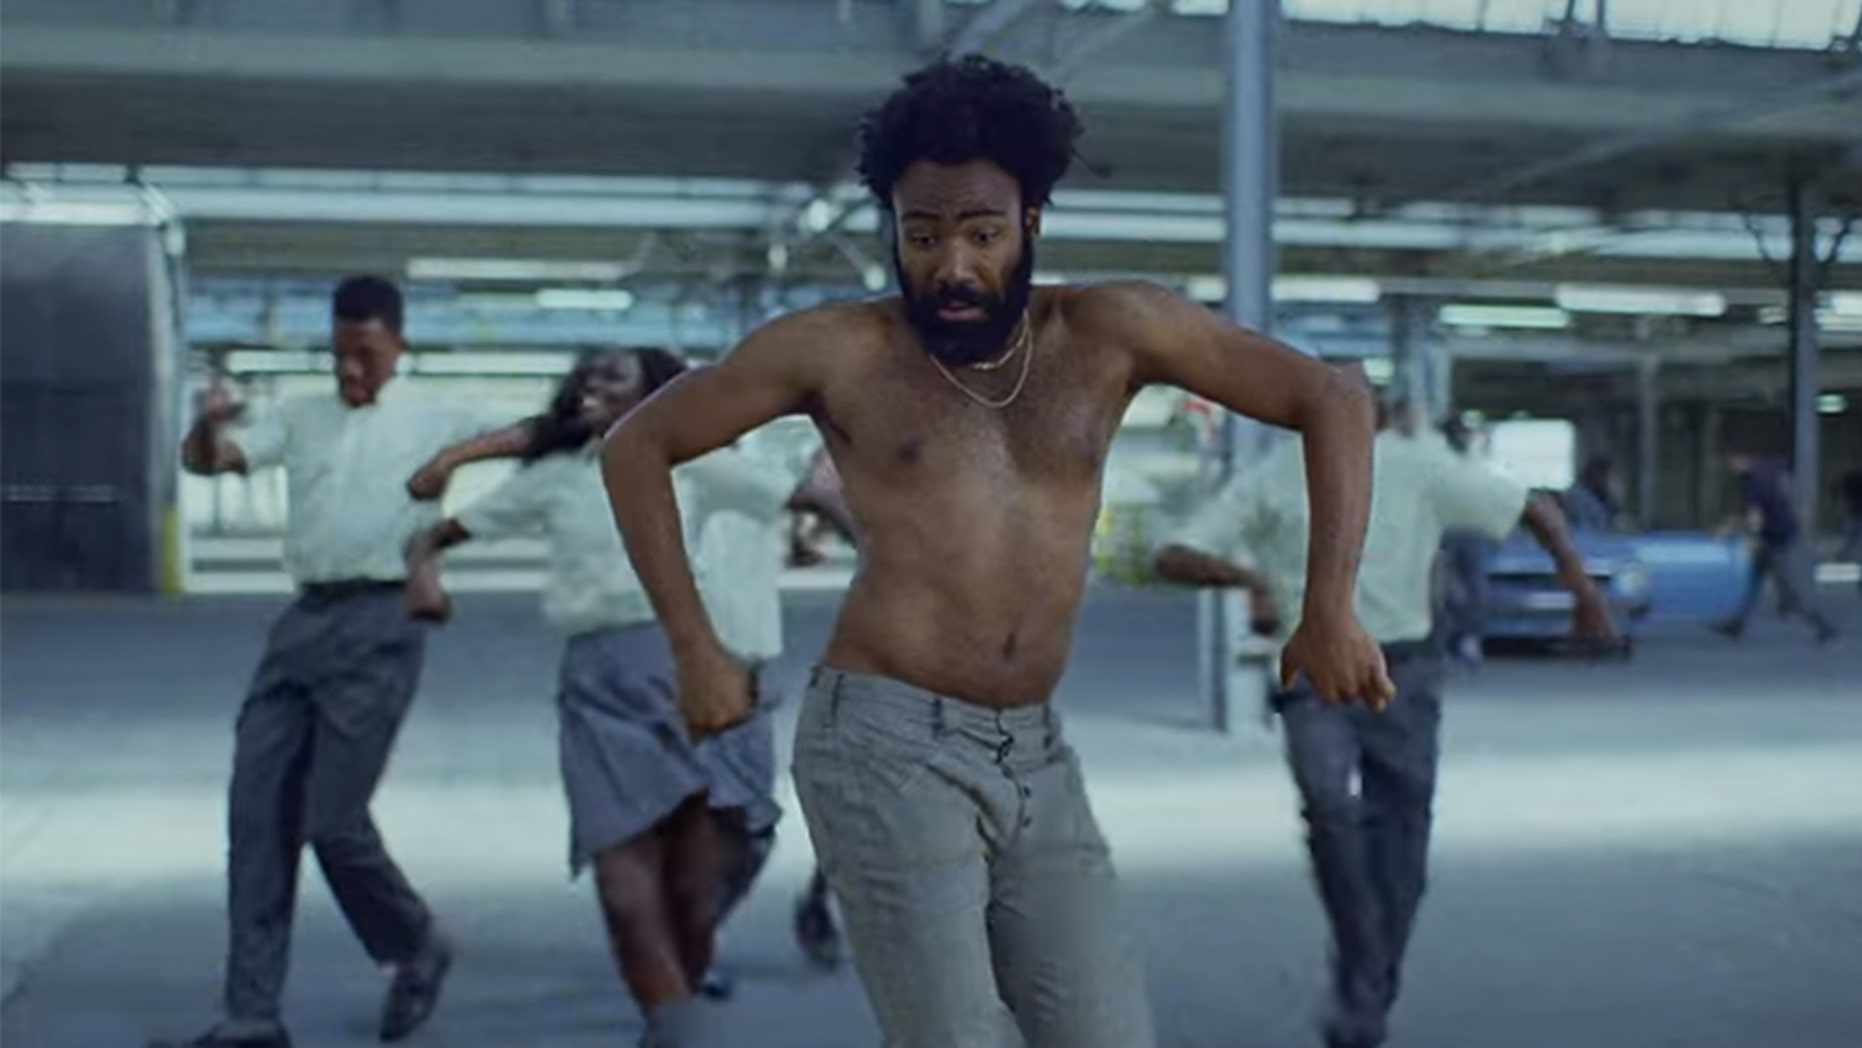 Childish Gambino's 'This Is America' tops charts as debate